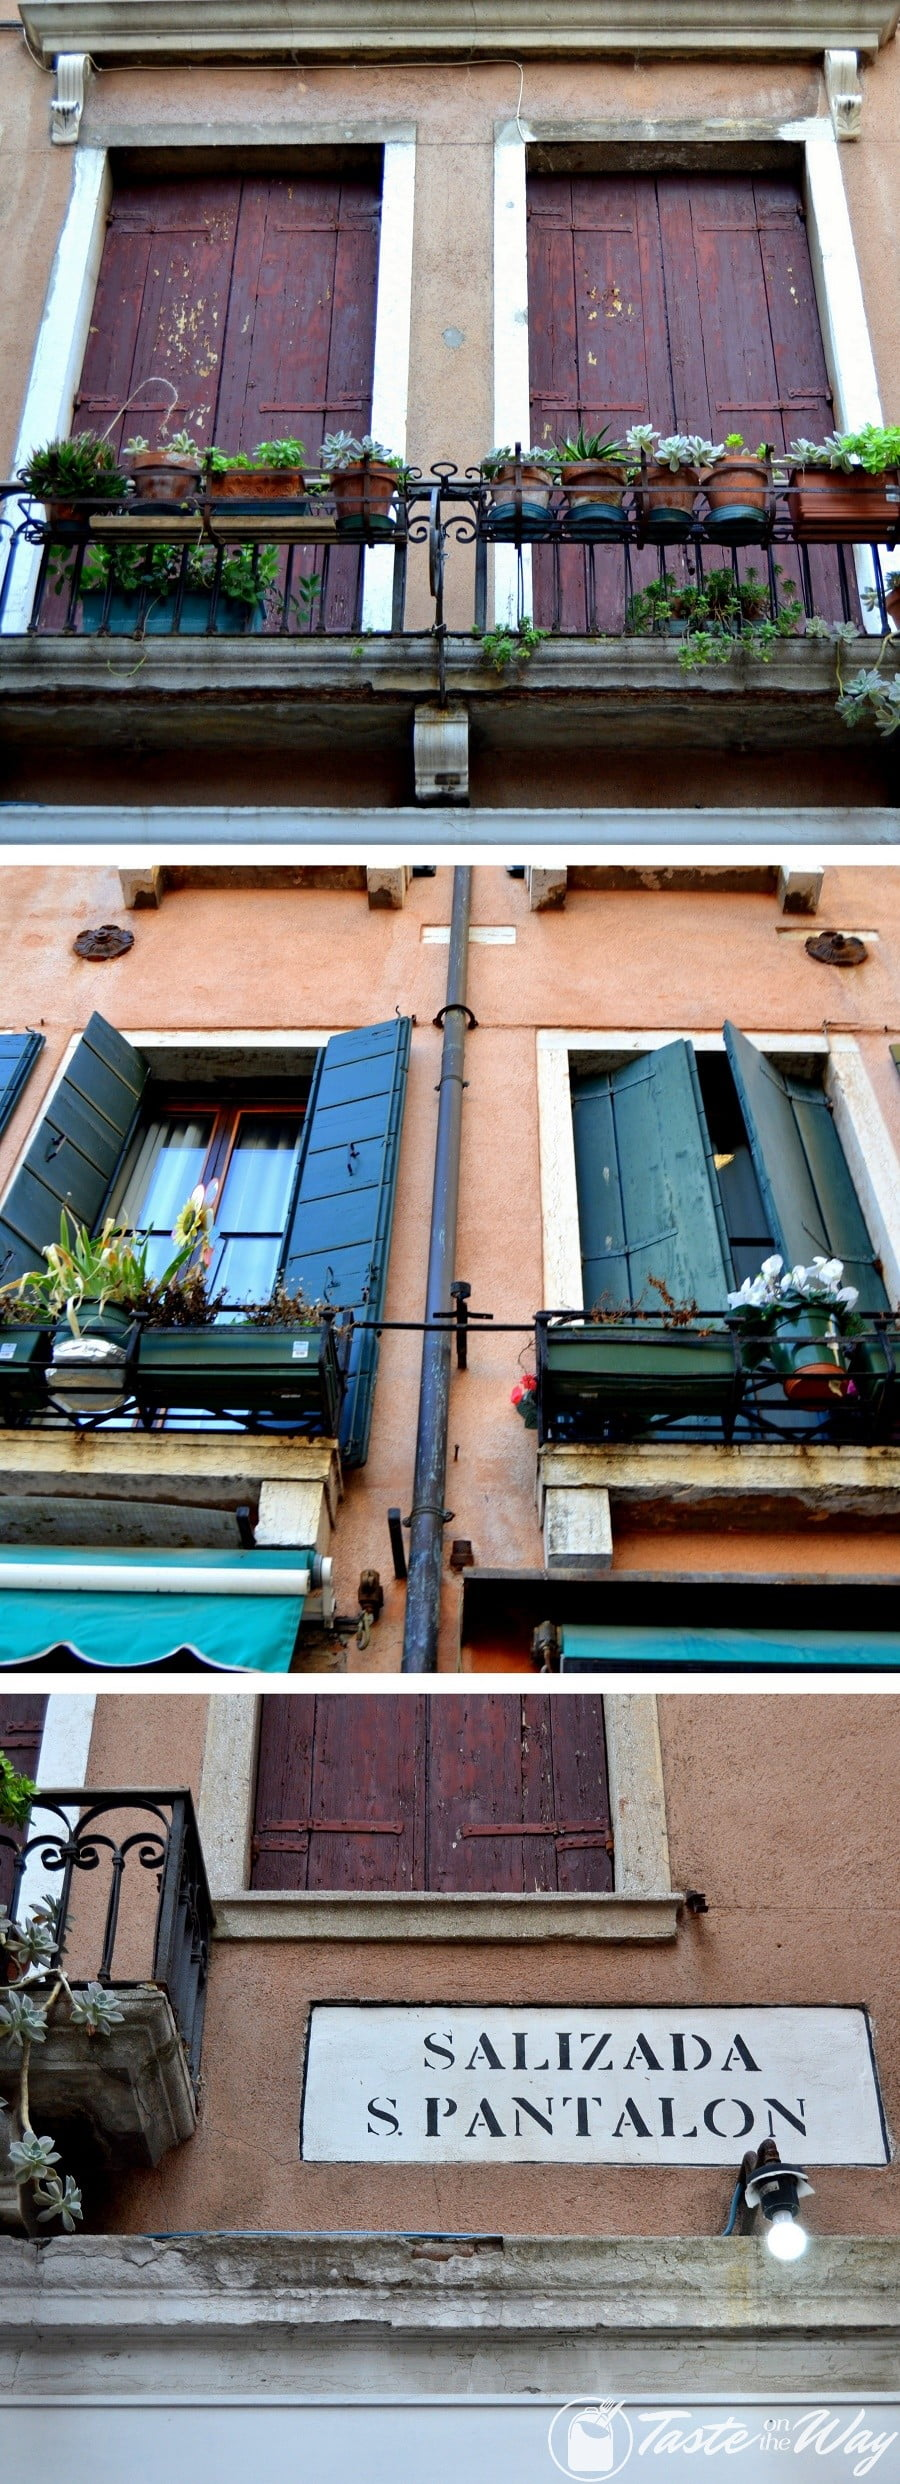 Check out these awesome pictures of colorful windows in #Venice #travel #photography @tasteontheway